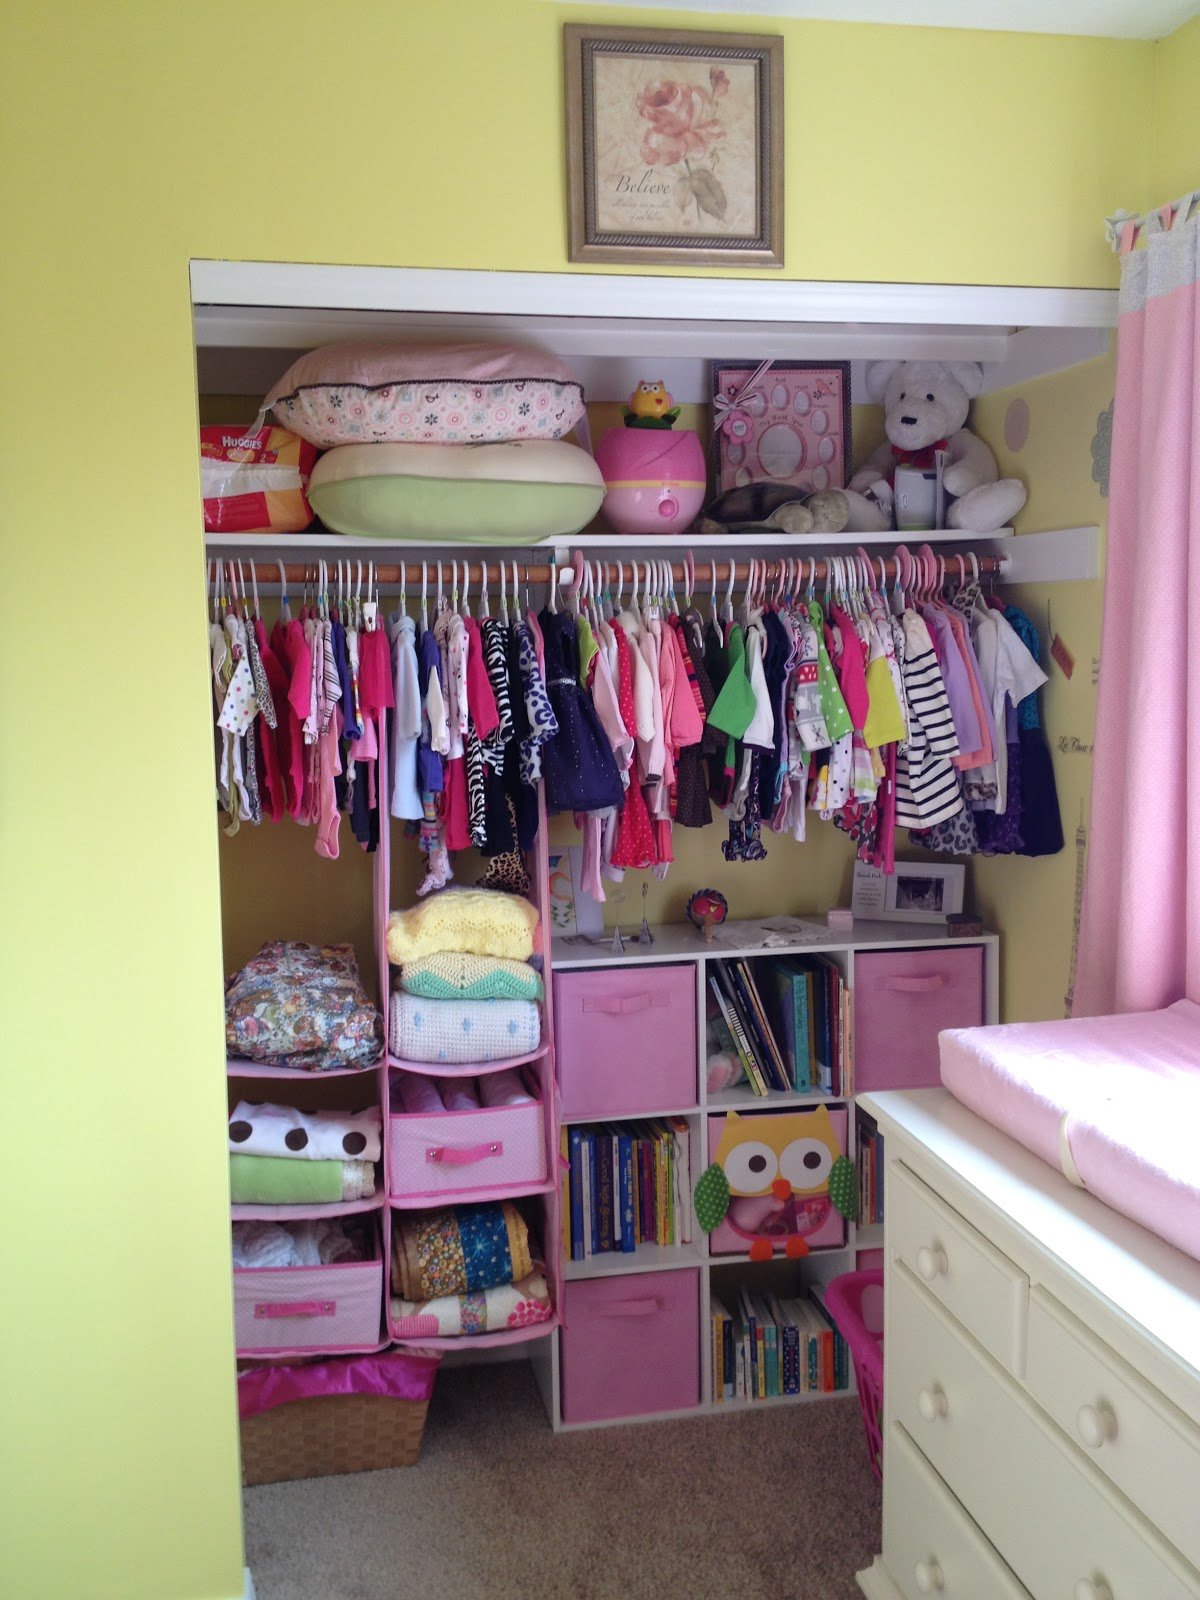 Baby cribs buy buy baby - We Purchased Her Crib And Changer Dresser From Buy Buy Baby